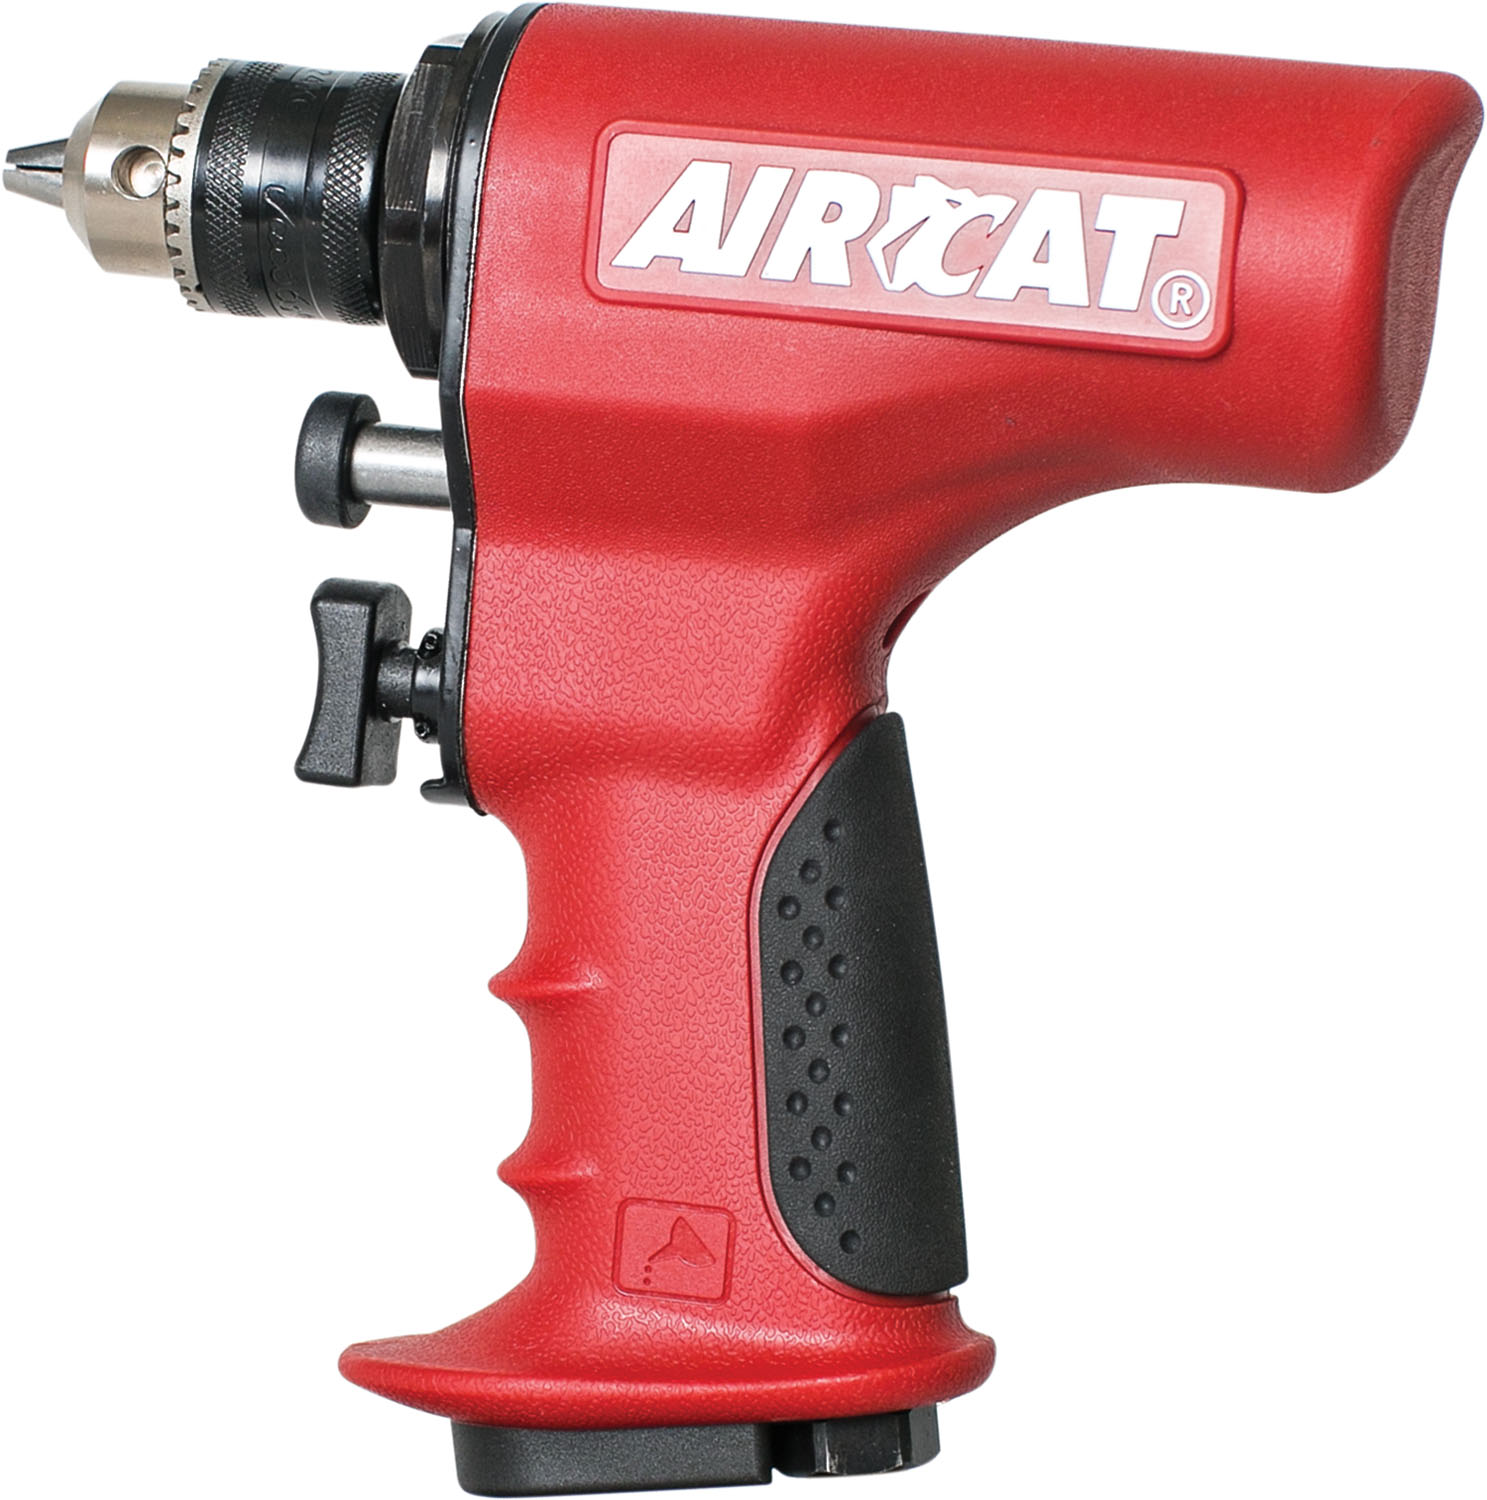 """AIRCAT 1/2"""" Drill - Vibration Damped Side Handle Included"""